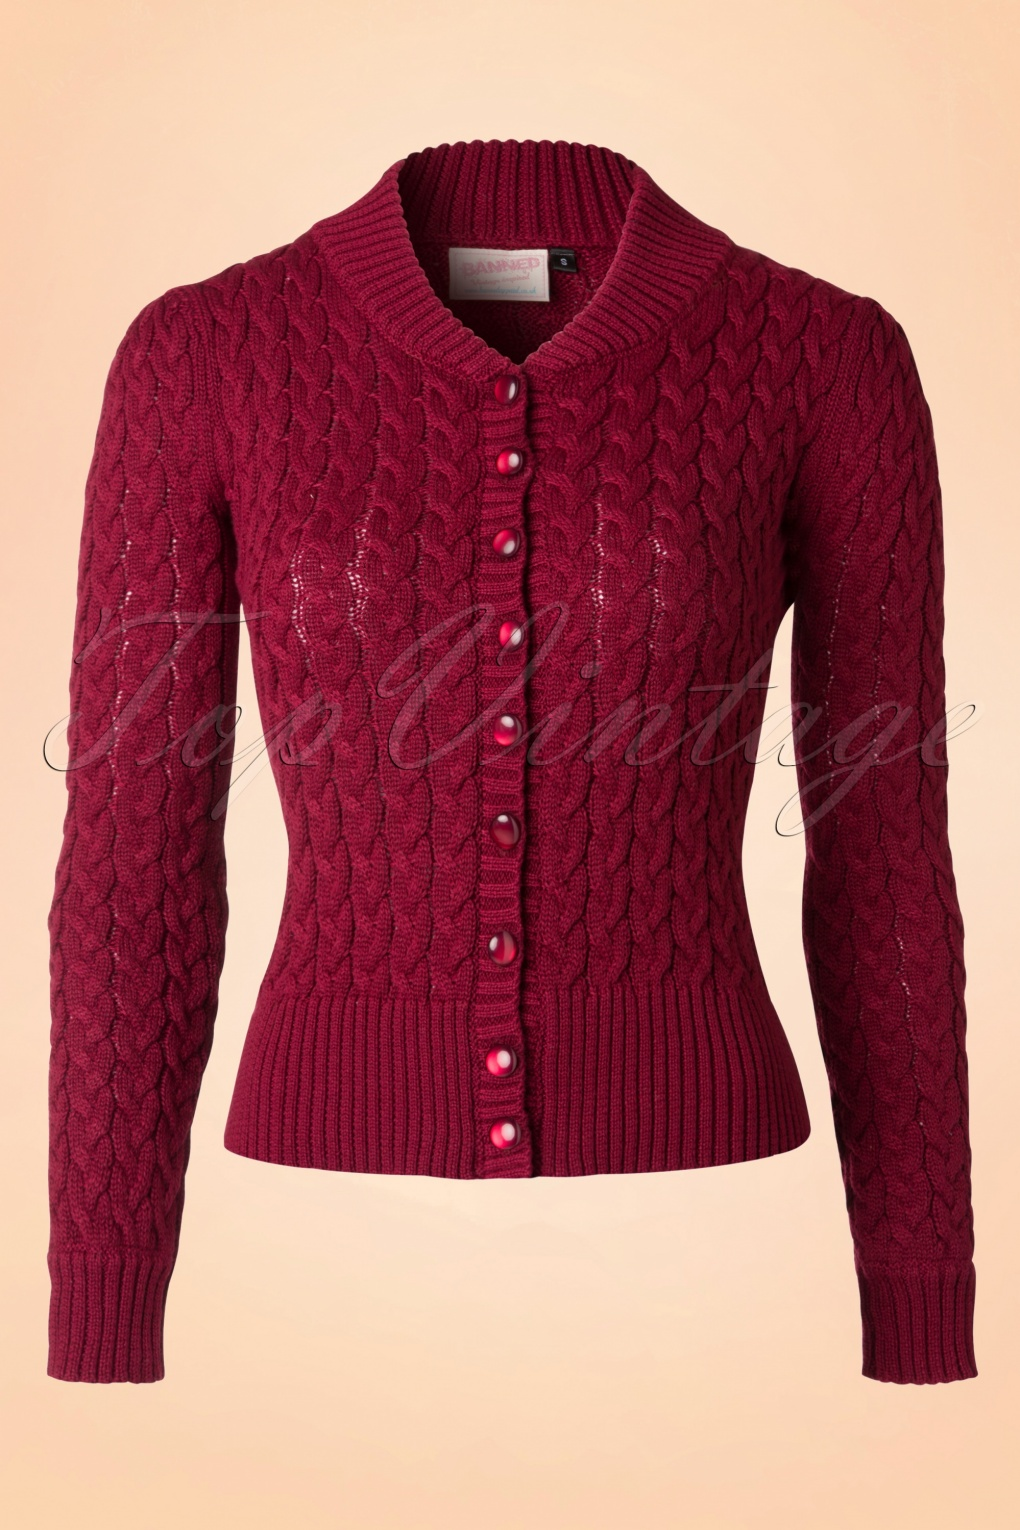 Retro Vintage Sweaters 50s No Doubt Cardigan in Raspberry Red £33.49 AT vintagedancer.com